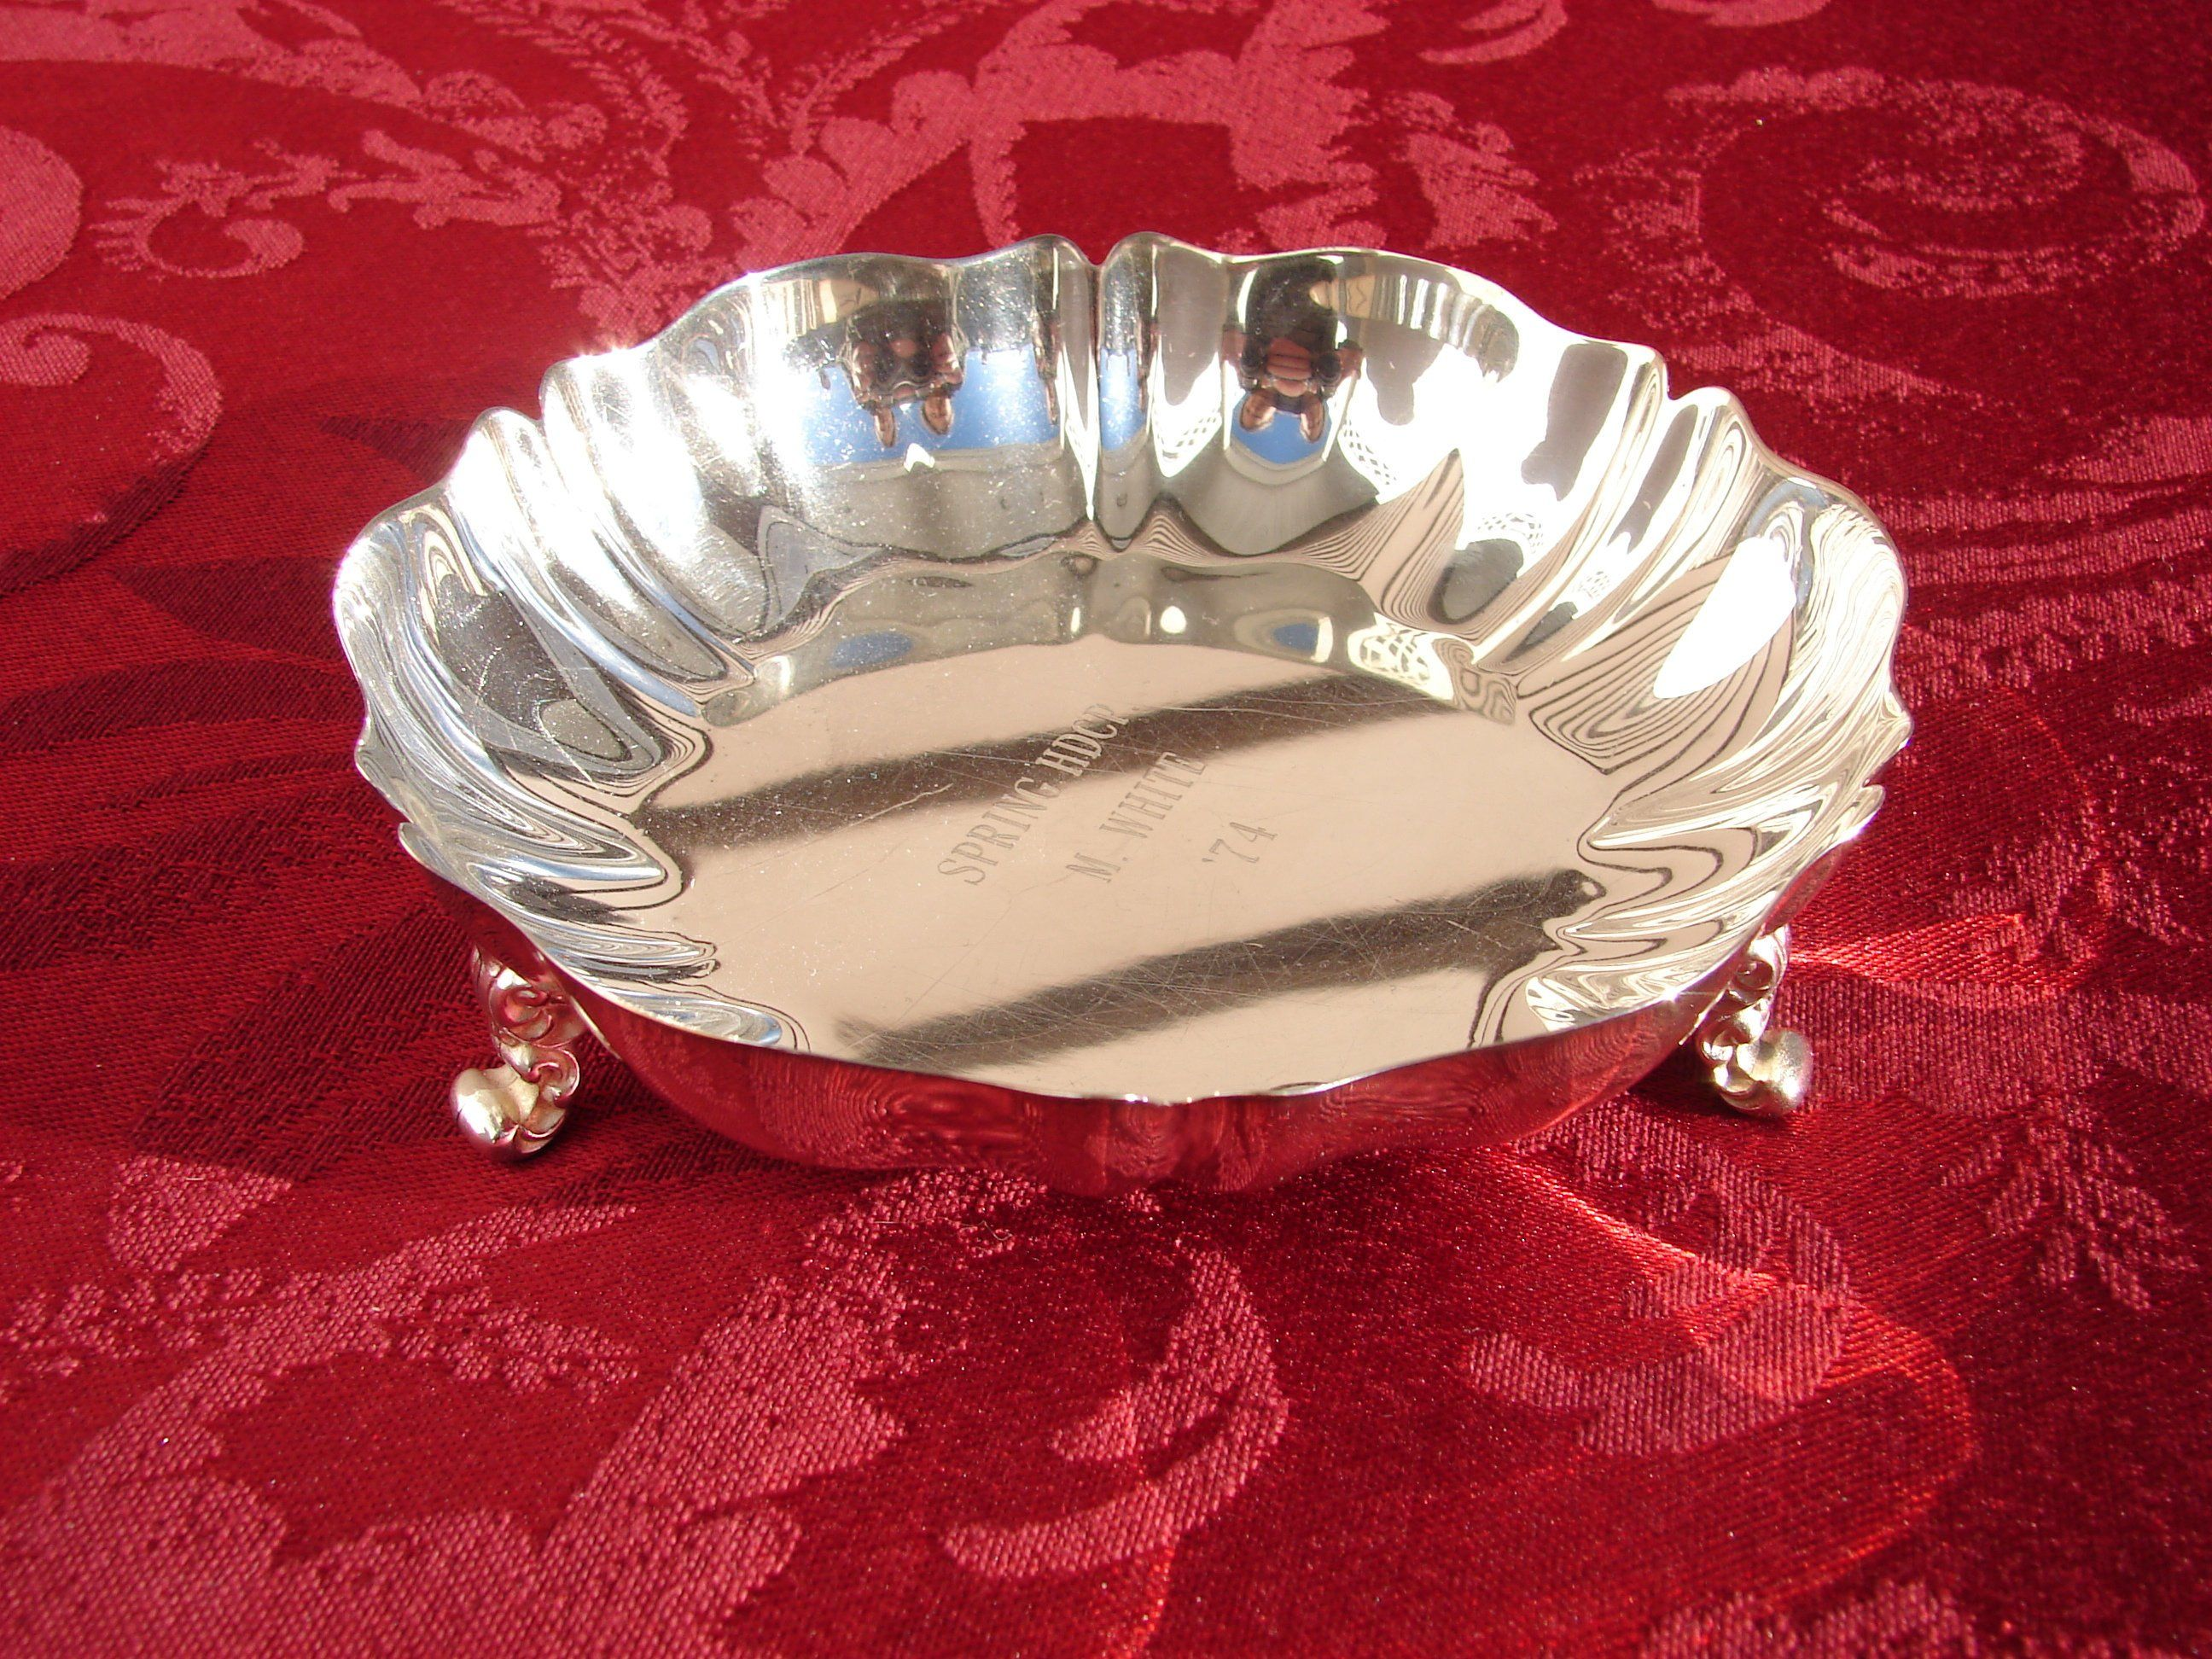 Silver Ornate Edged Footed Long Dish Silver Metal Double Handle Serving Dish Silver Metal Art Nouveau Style Relish Dish